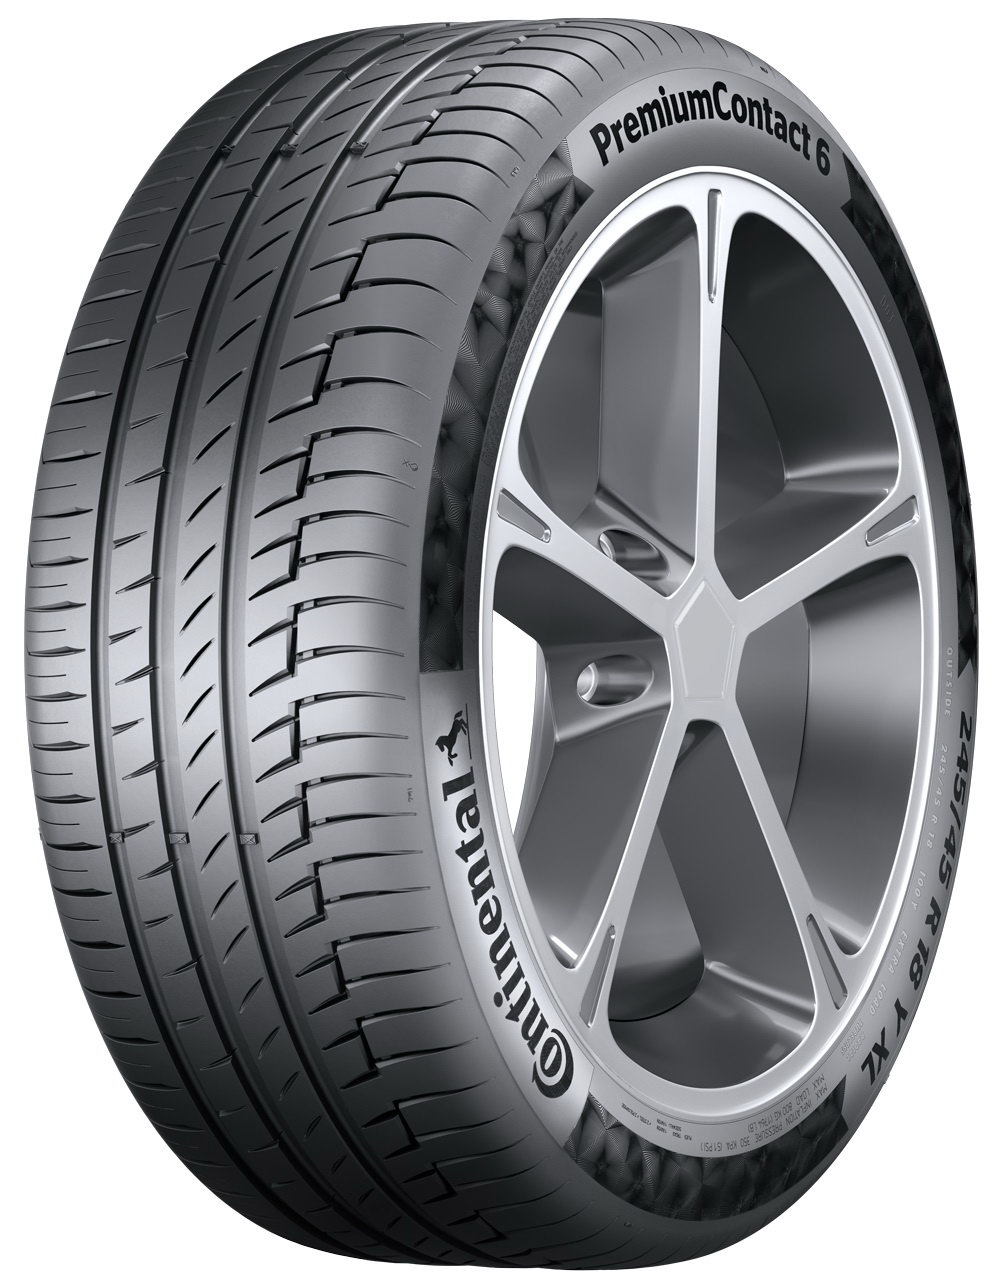 Anvelope vara CONTINENTAL PREMIUM CONTACT 6 235/45 R17 94Y